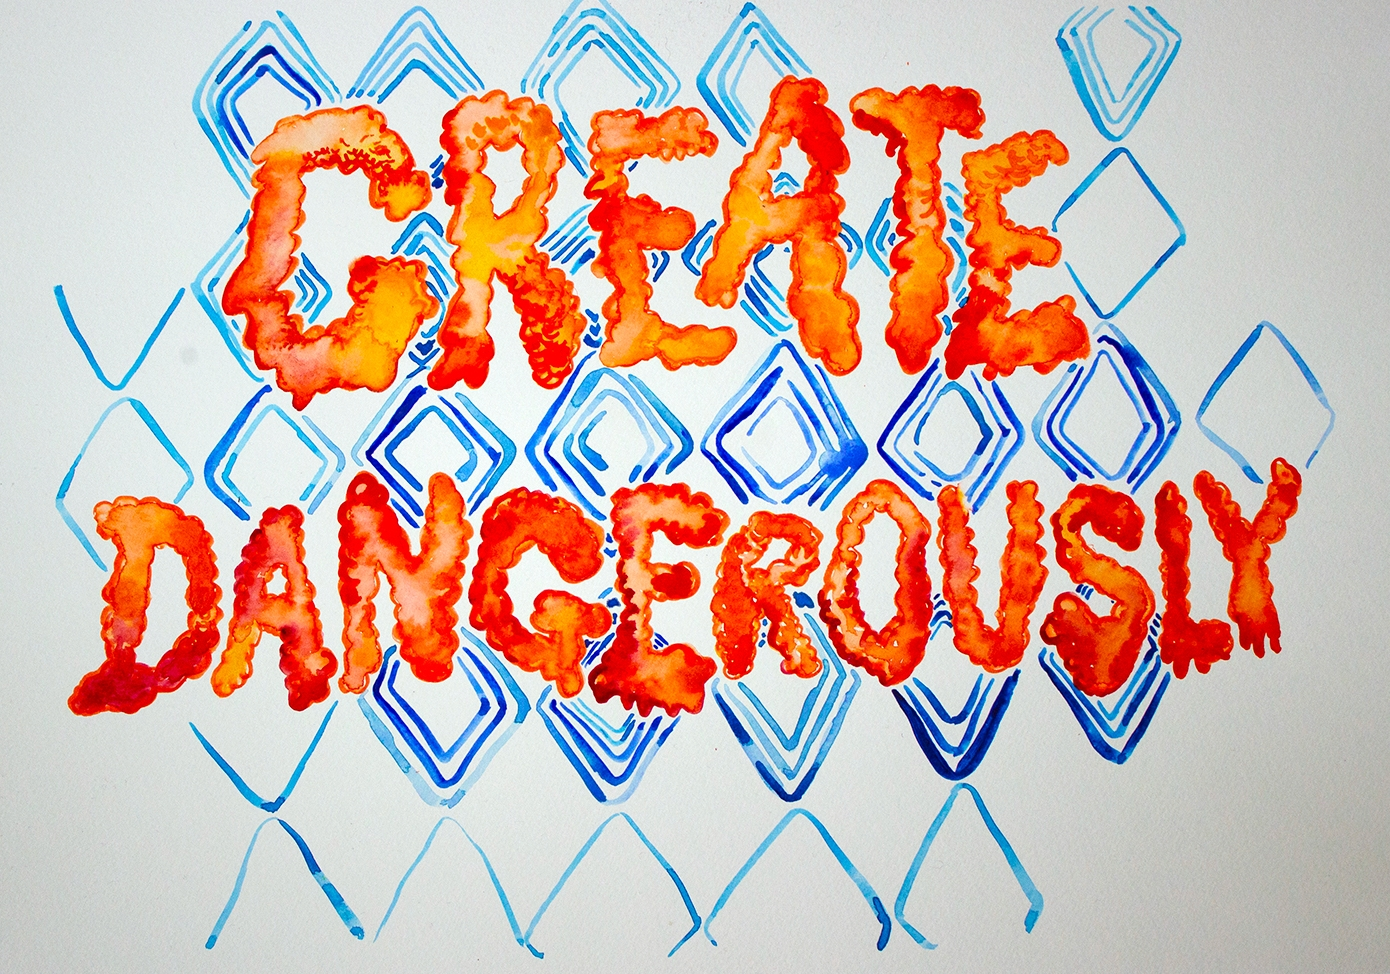 Conjuring rest for new infrastructure – create dangerously (watercolour series, 2021)